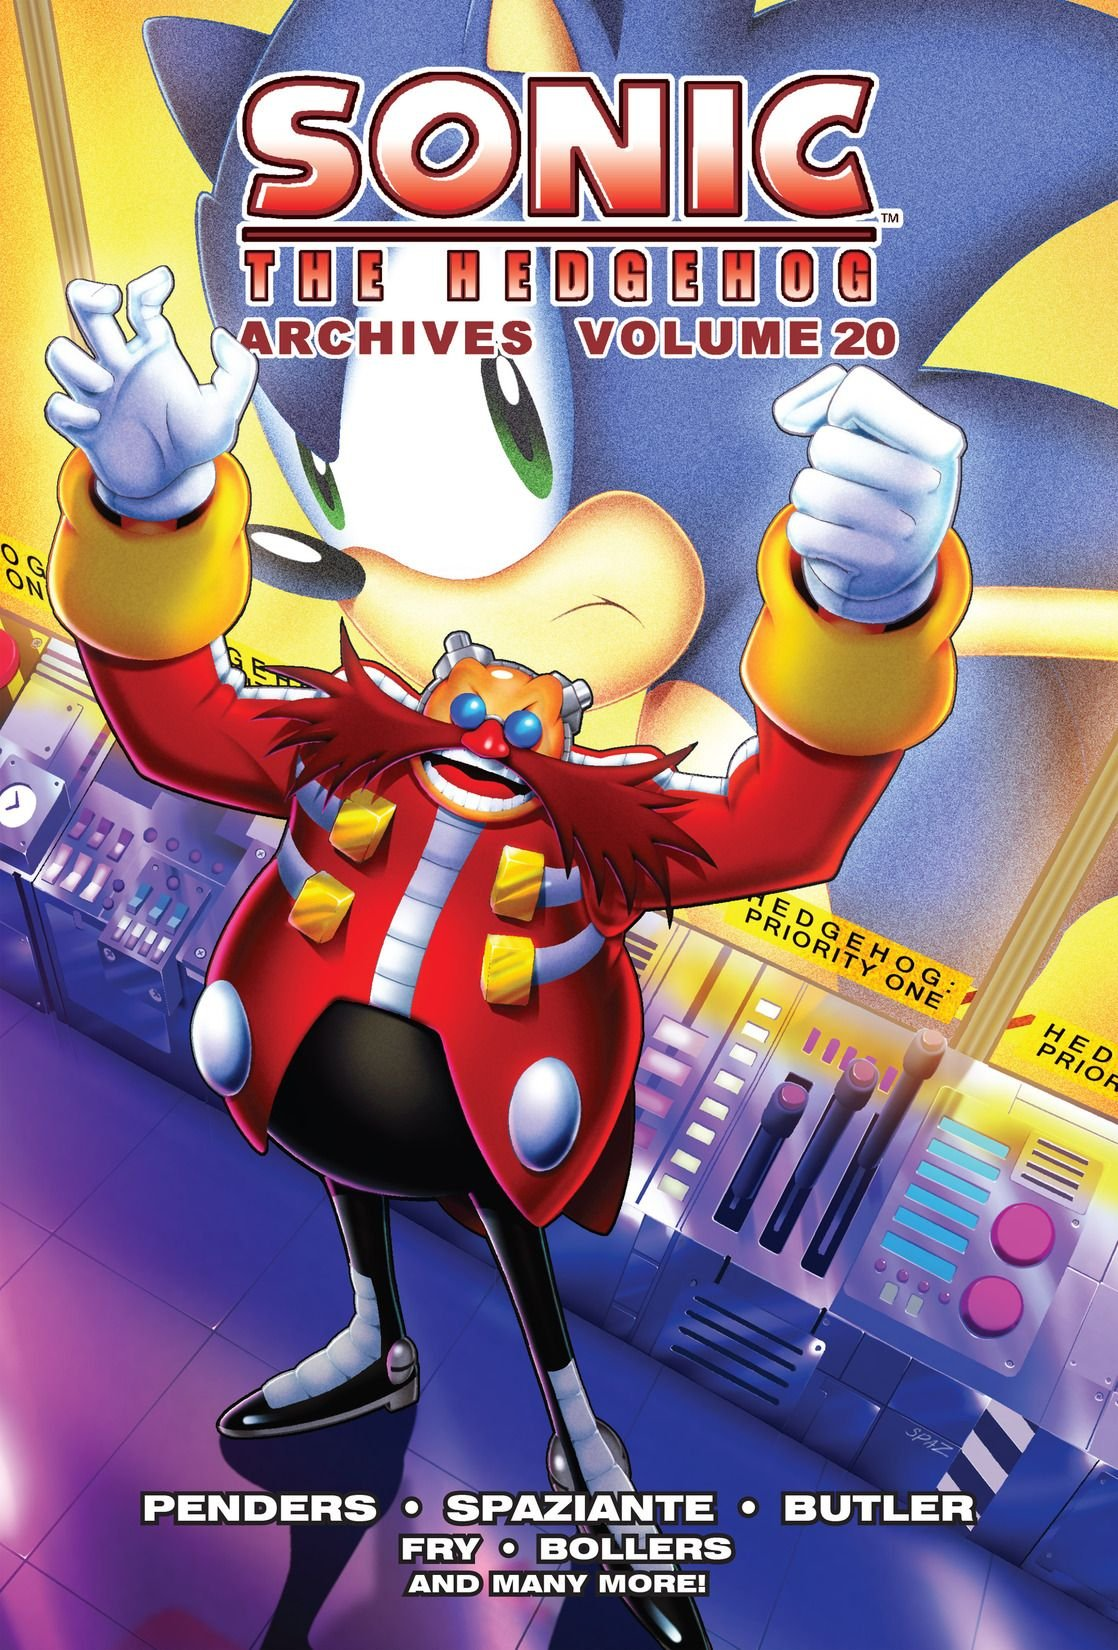 Sonic the Hedgehog Archives Volume 20